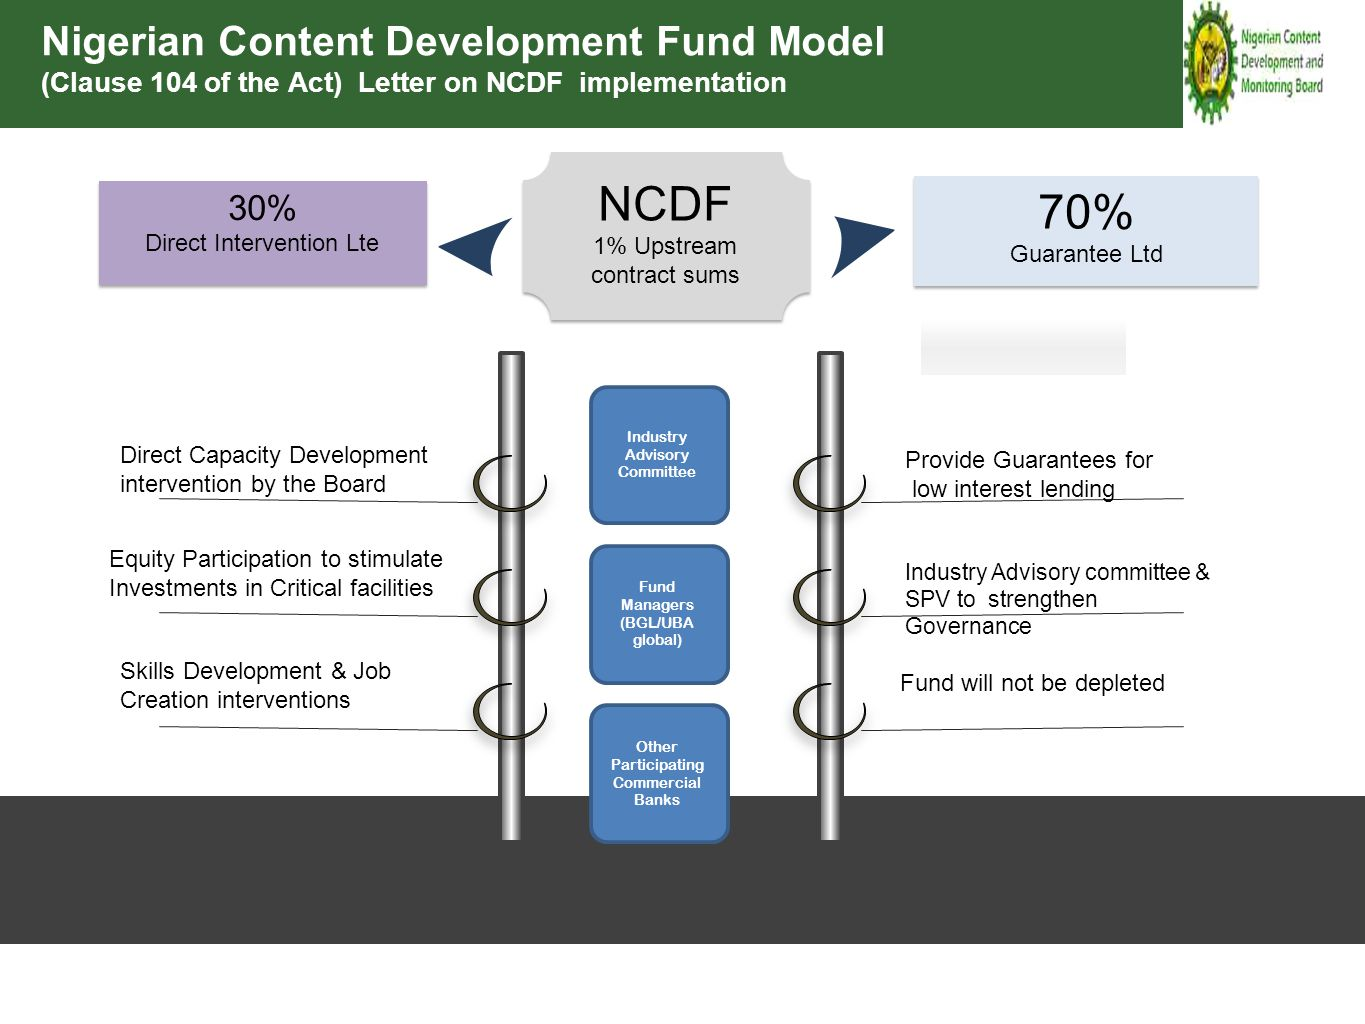 Direct Capacity Development intervention by the Board Equity Participation to stimulate Investments in Critical facilities Skills Development & Job Cr